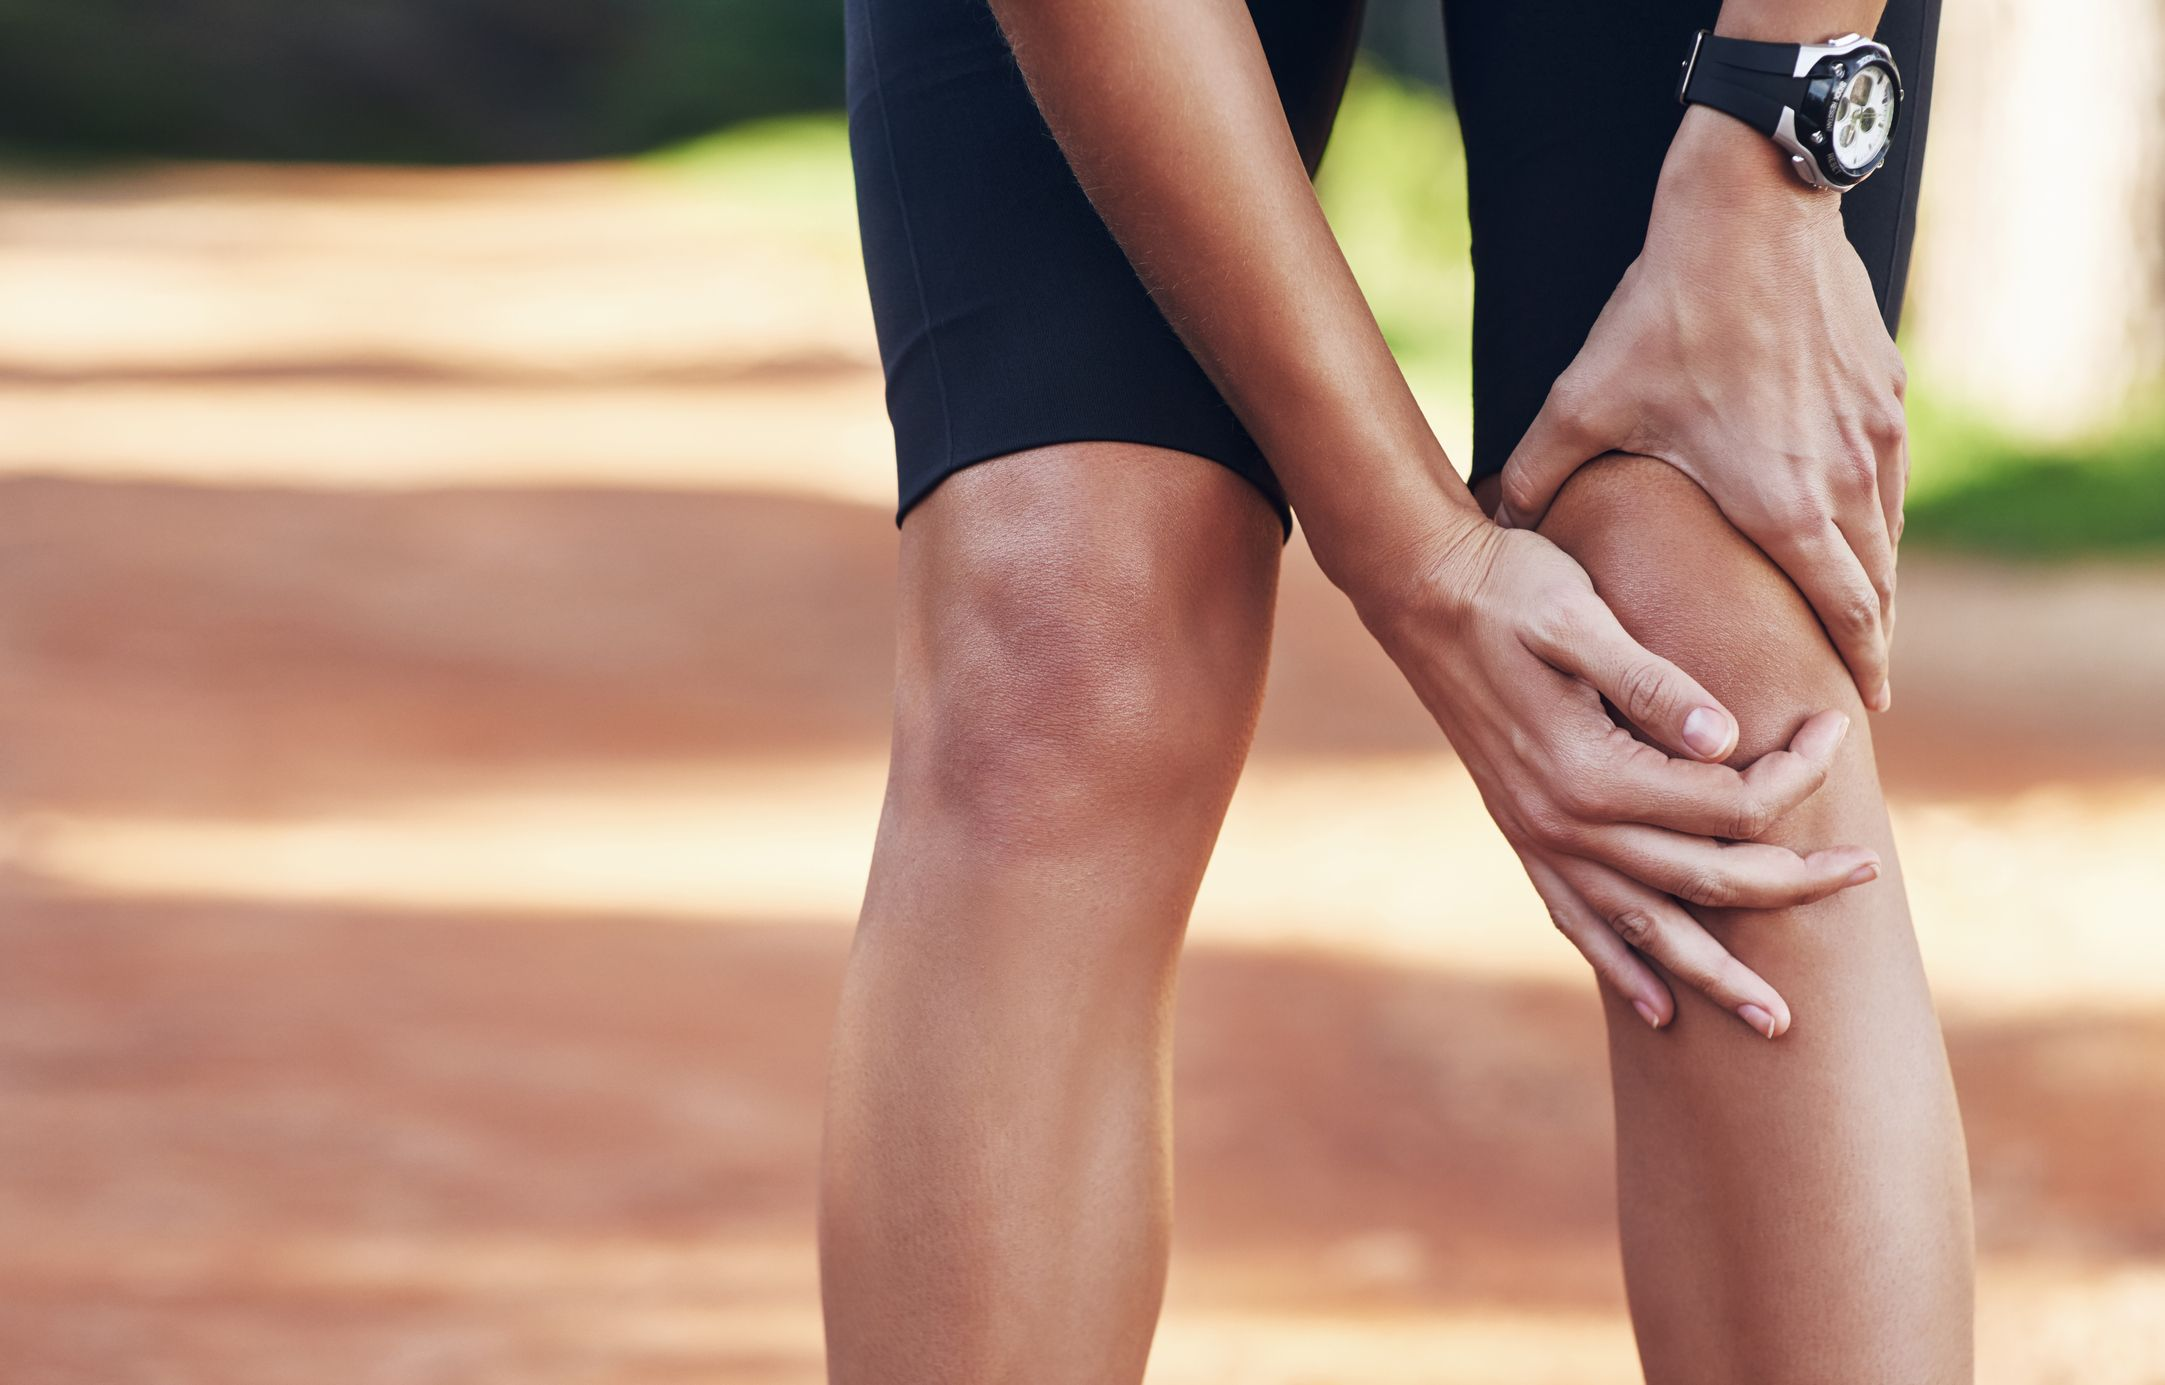 Why Does My Leg Hurt? The 6 Most Common Causes of Lower Leg Pain